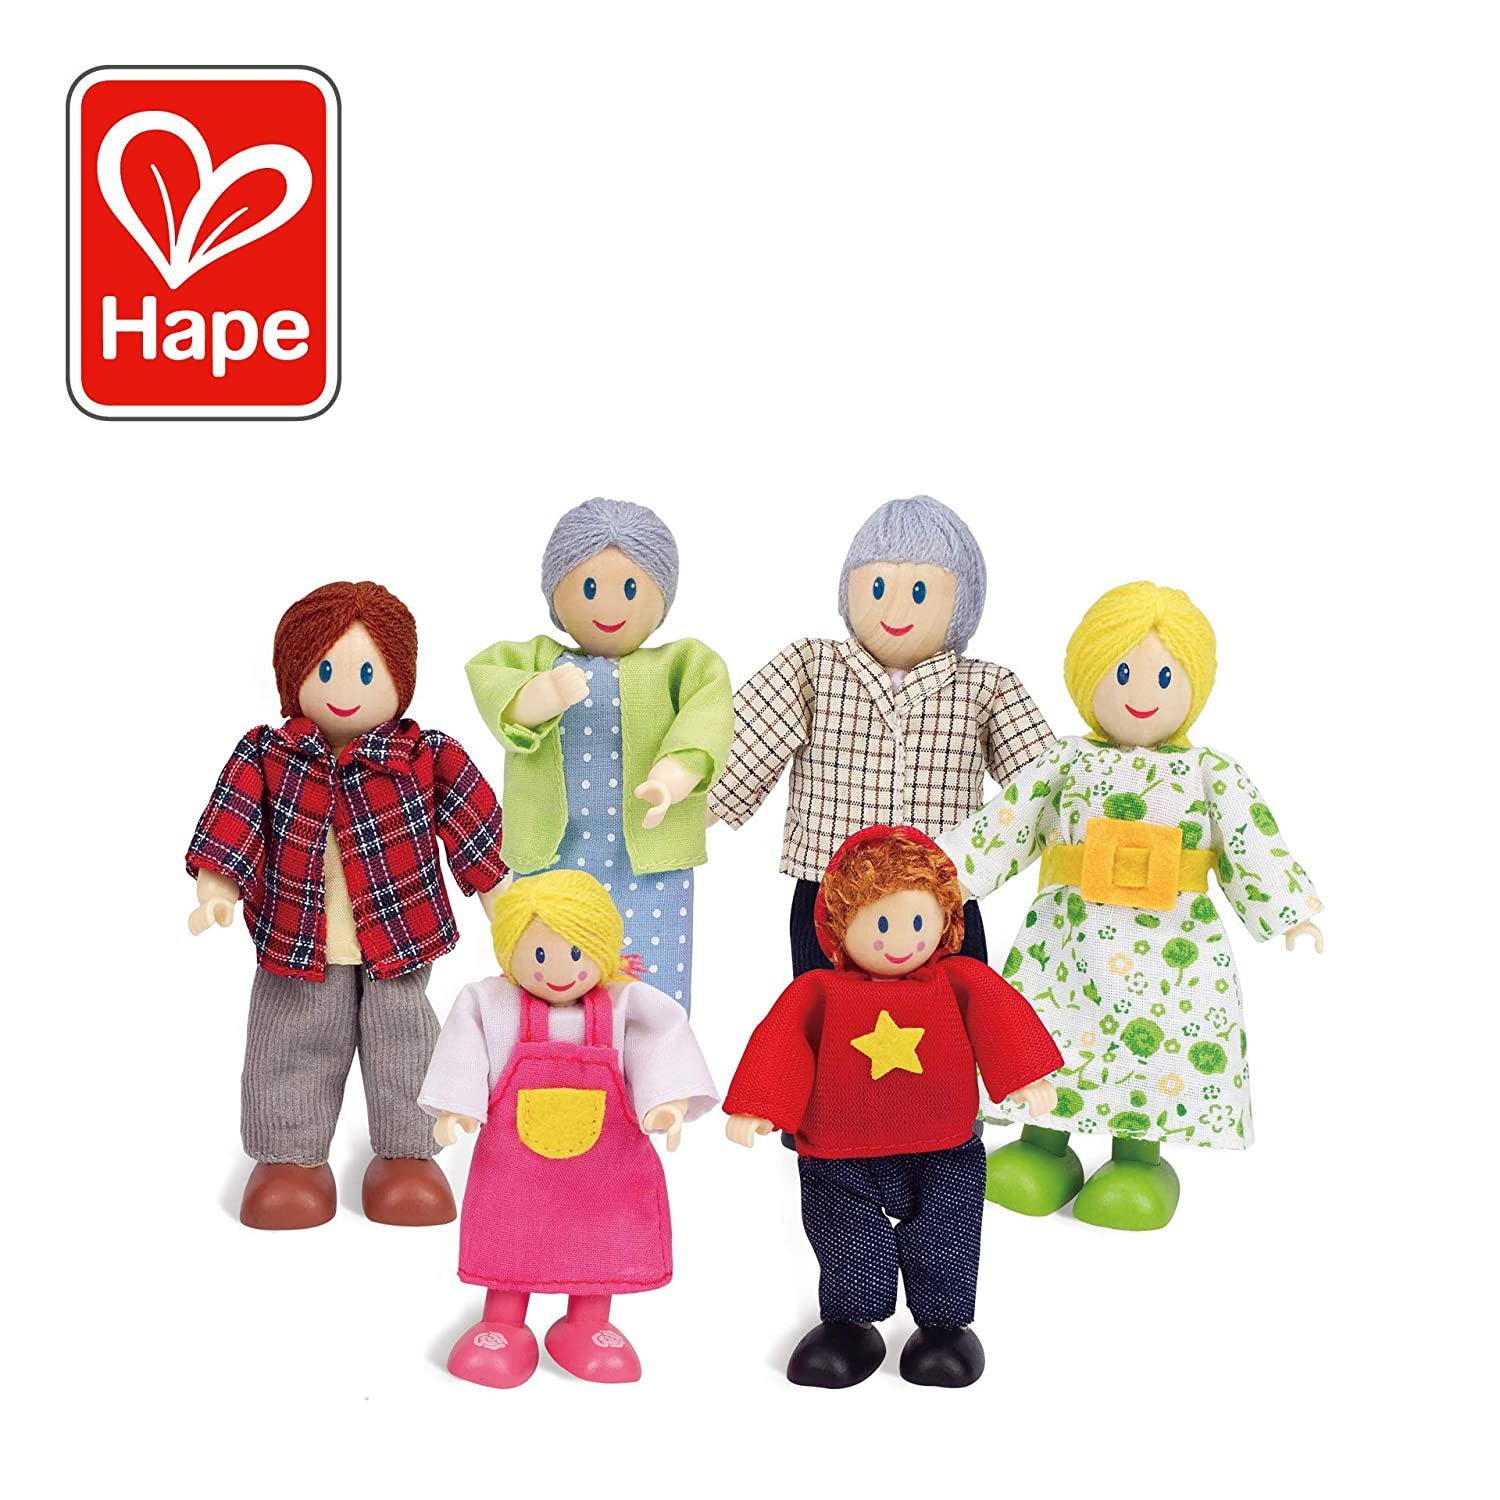 Award Winning Hape Caucasian Doll Family Set for Kid's Dollhouses